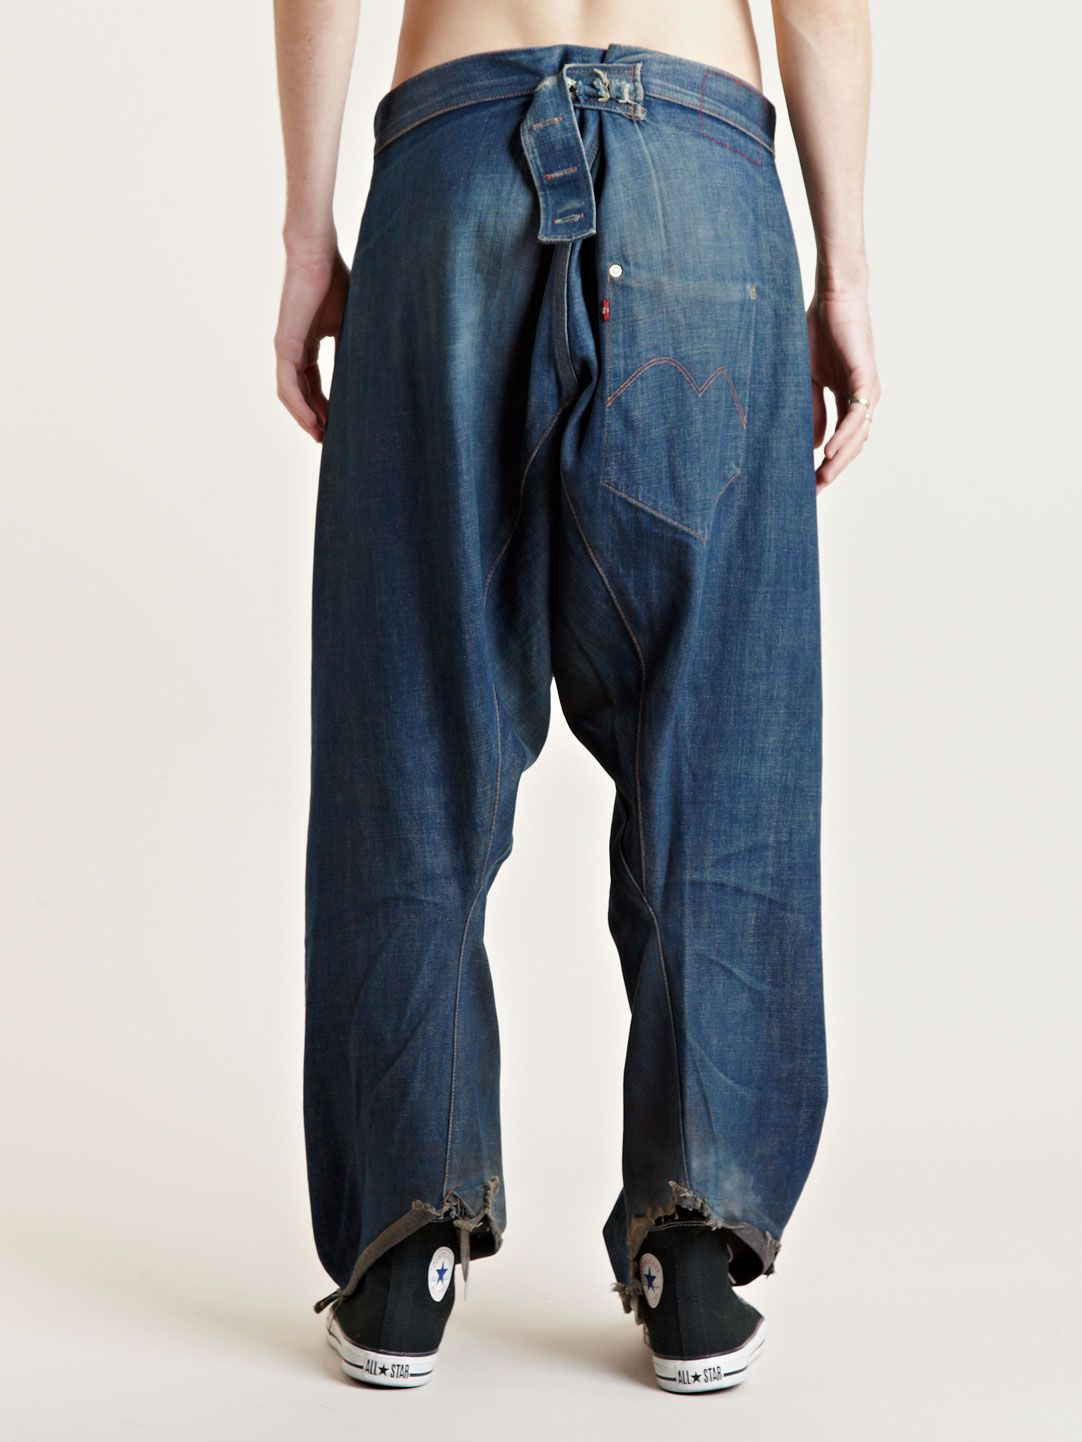 Giant Why Back Would Twisted Red Archive Wear Levi's Anyone Want To AwREqn